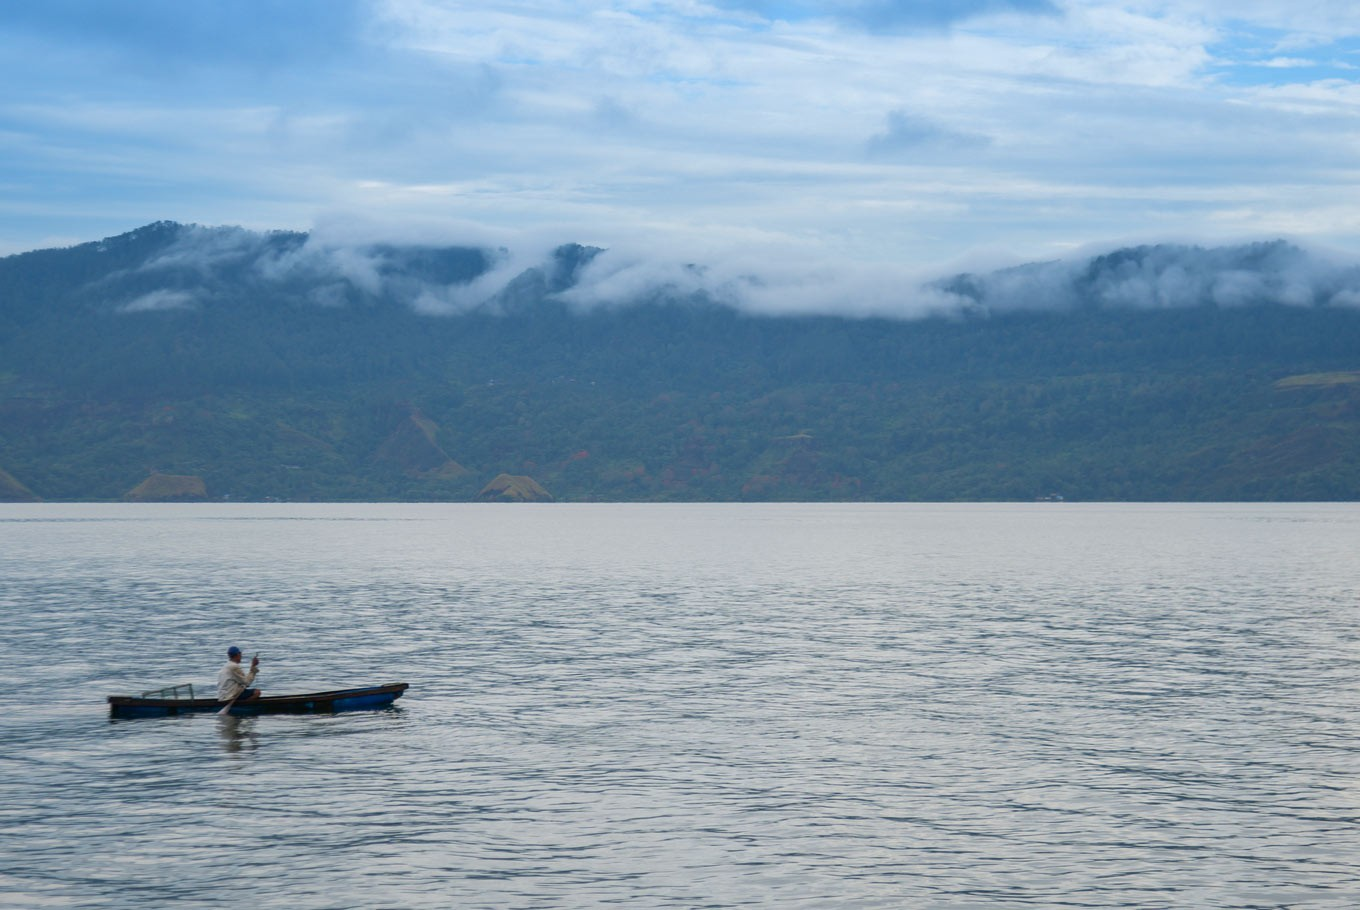 Kayakers aid Lake Toba search